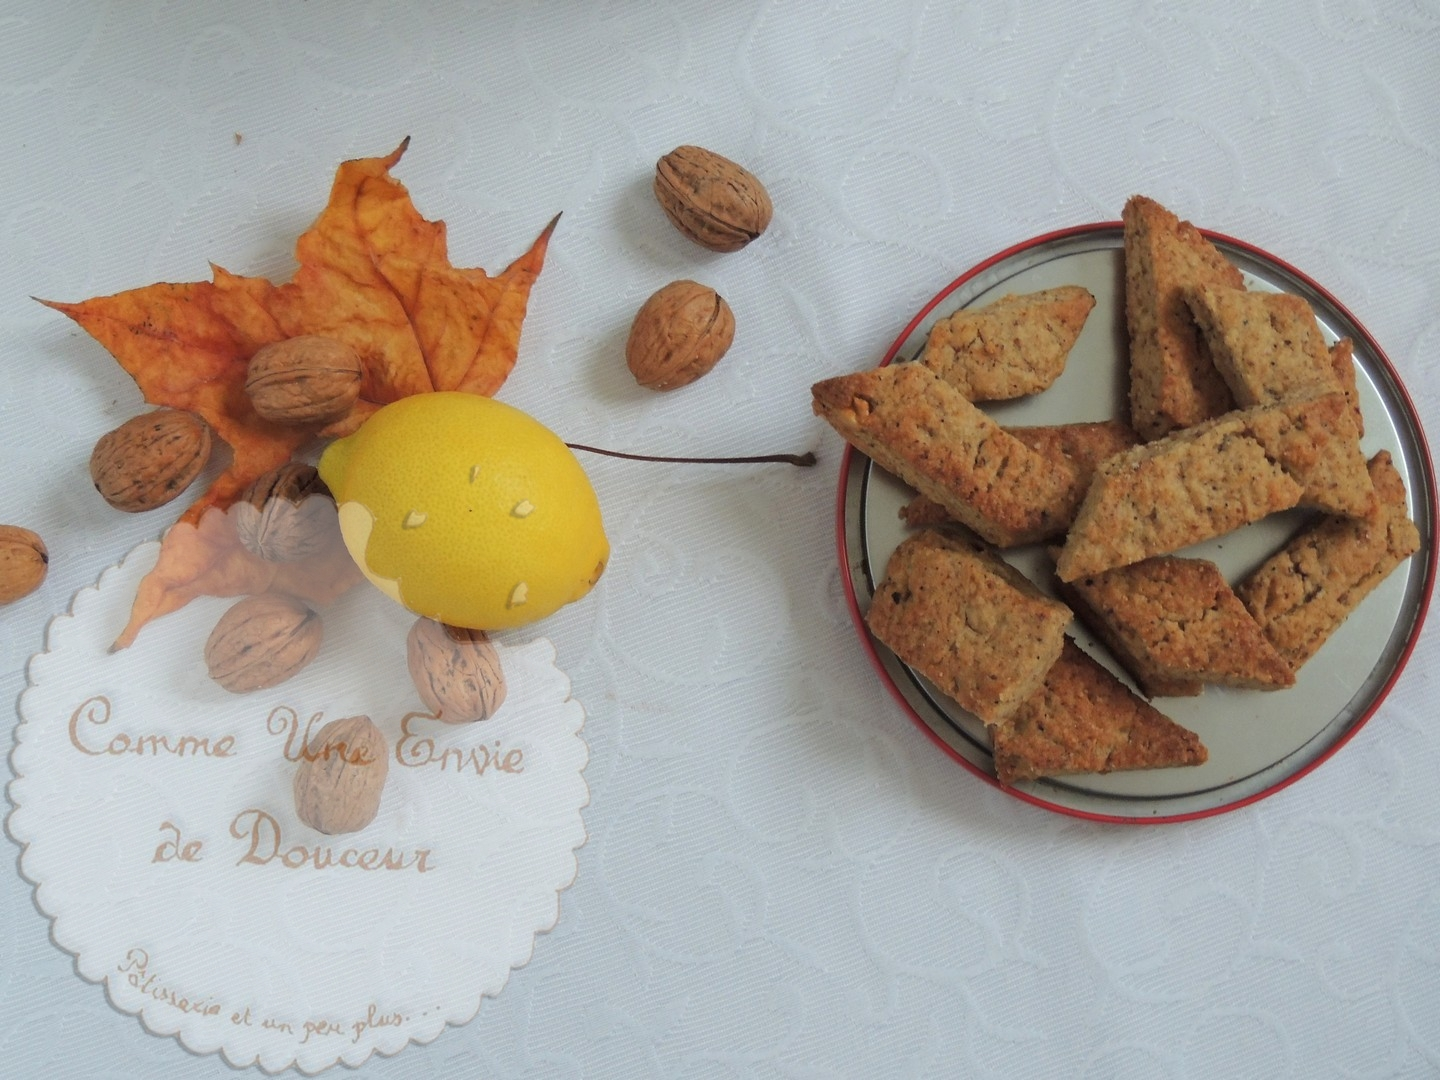 Canistrelli, biscuits croquants aux noix, citron & orange – Crunchy walnut's & lemon biscuits